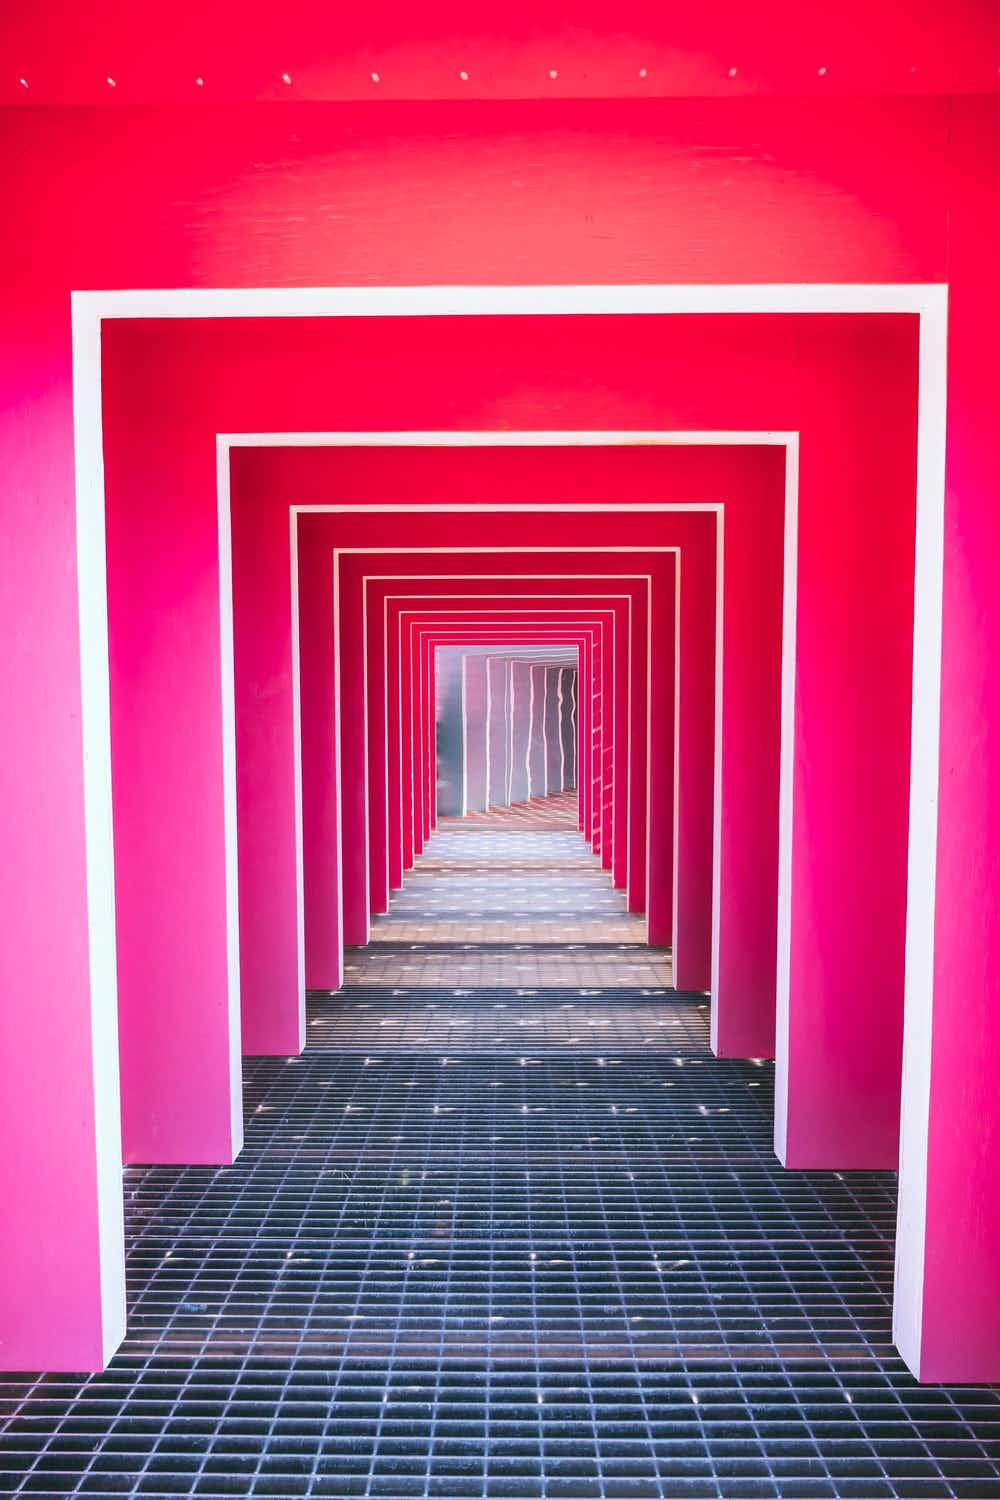 Unusual Passages: quirky art installations wow visitors to Quebec City